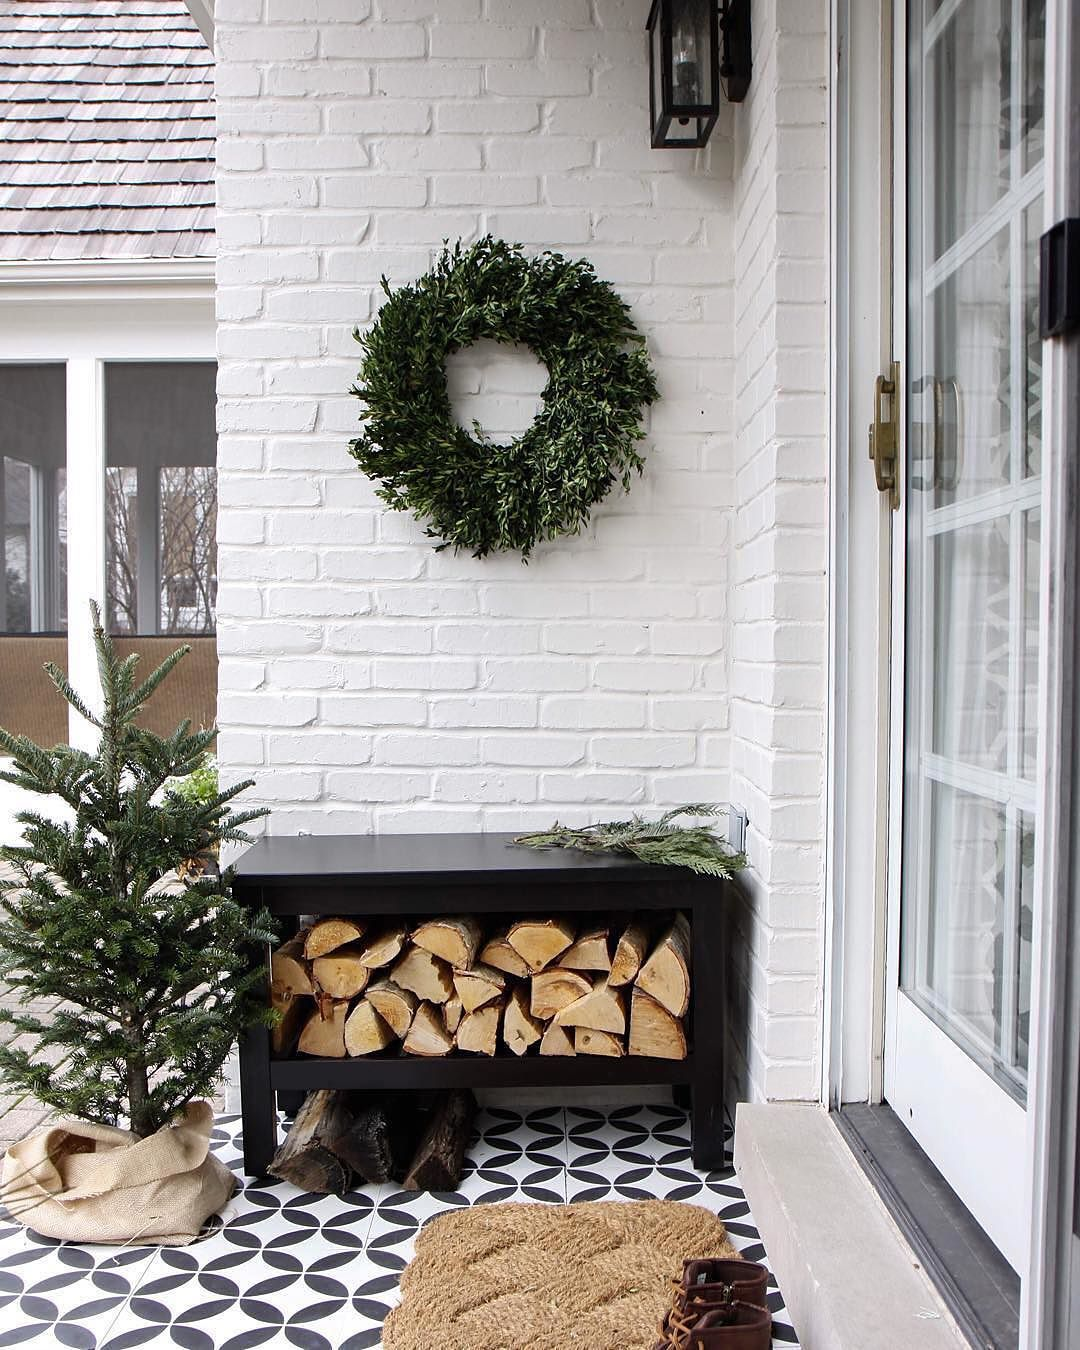 Welcome winter with warmth, cheer, and the coziness of a festive little outdoor nook. Shop this space -- link in profile. #myonepiece image @parkandoakdesign